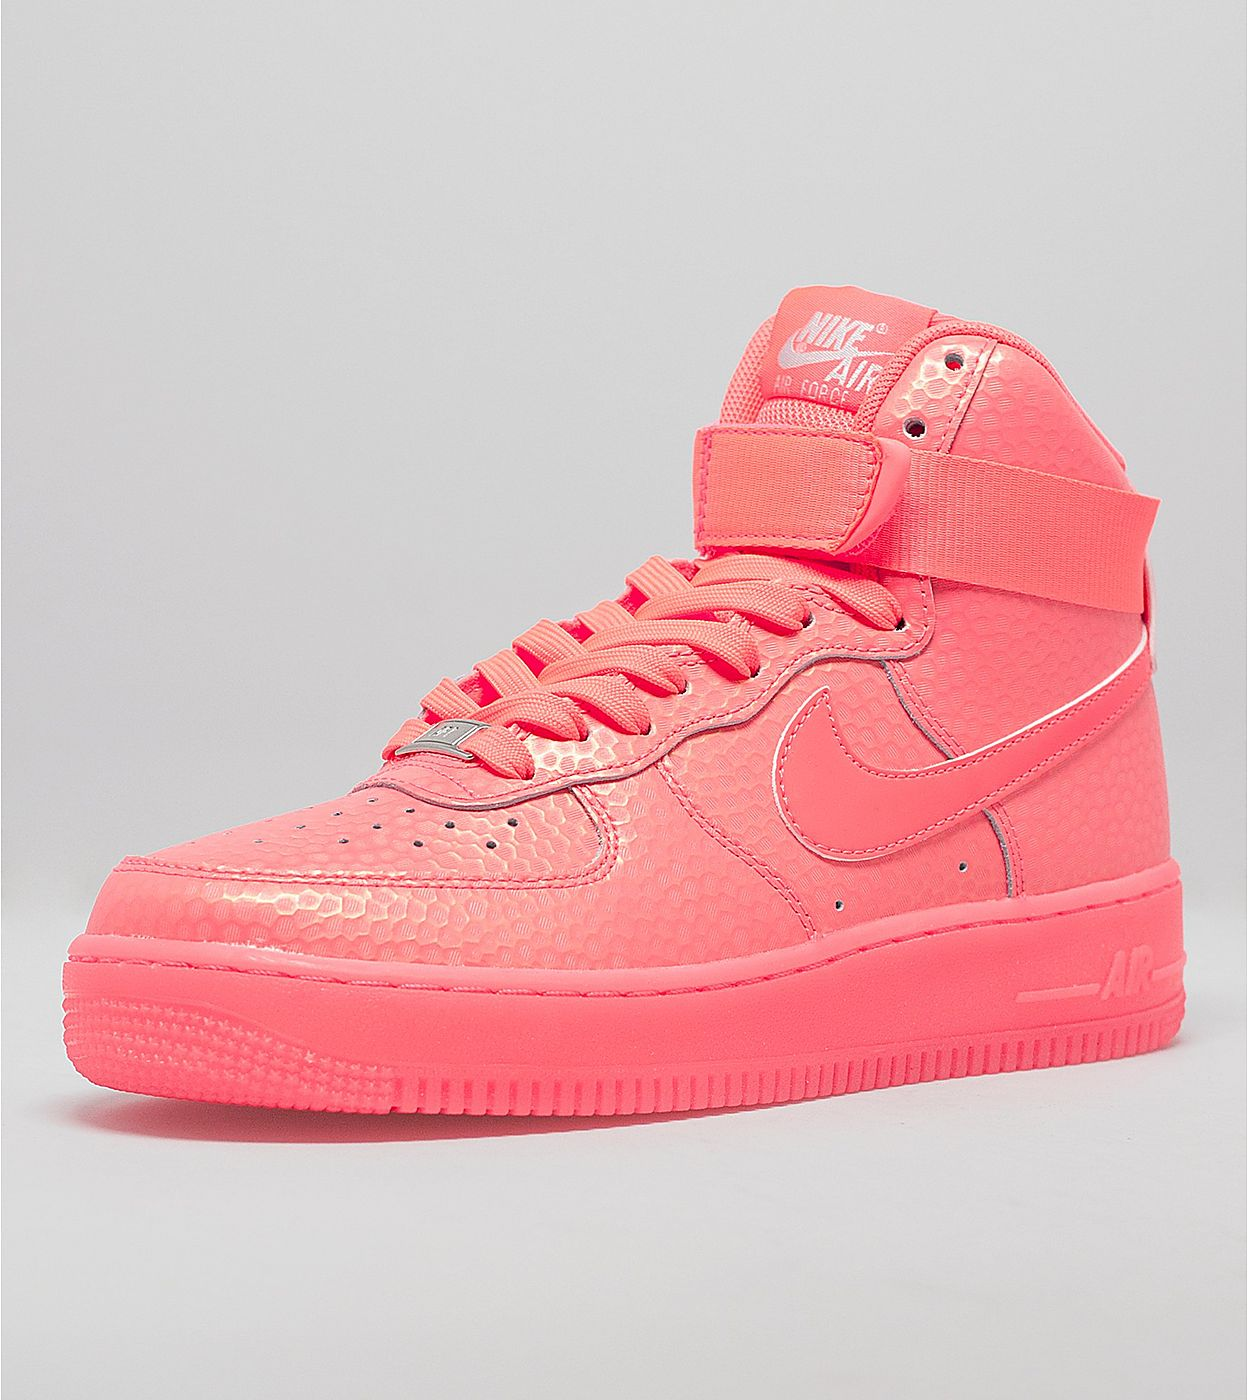 nike air force 1 high 07 ebay buying